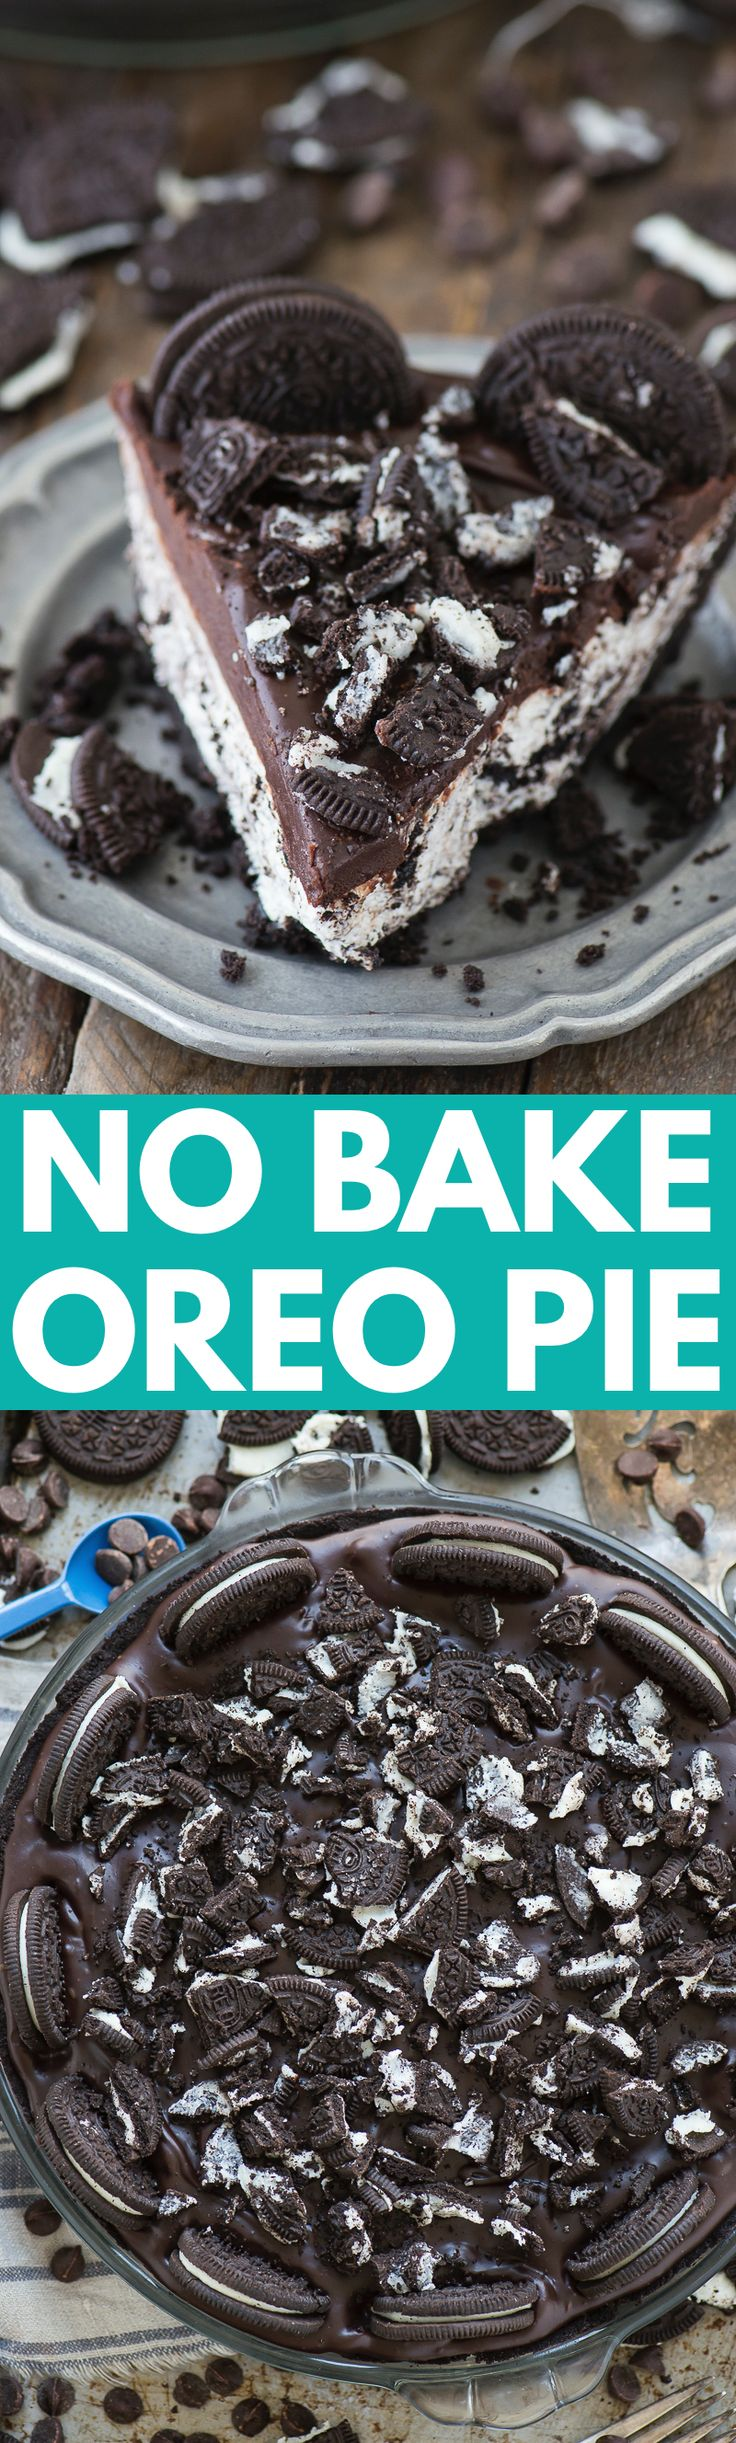 No Bake Oreo Pie | The First Year Blog | Oreo crust, oreo cream cheese filling, chocolate ganache topped with oreos!!